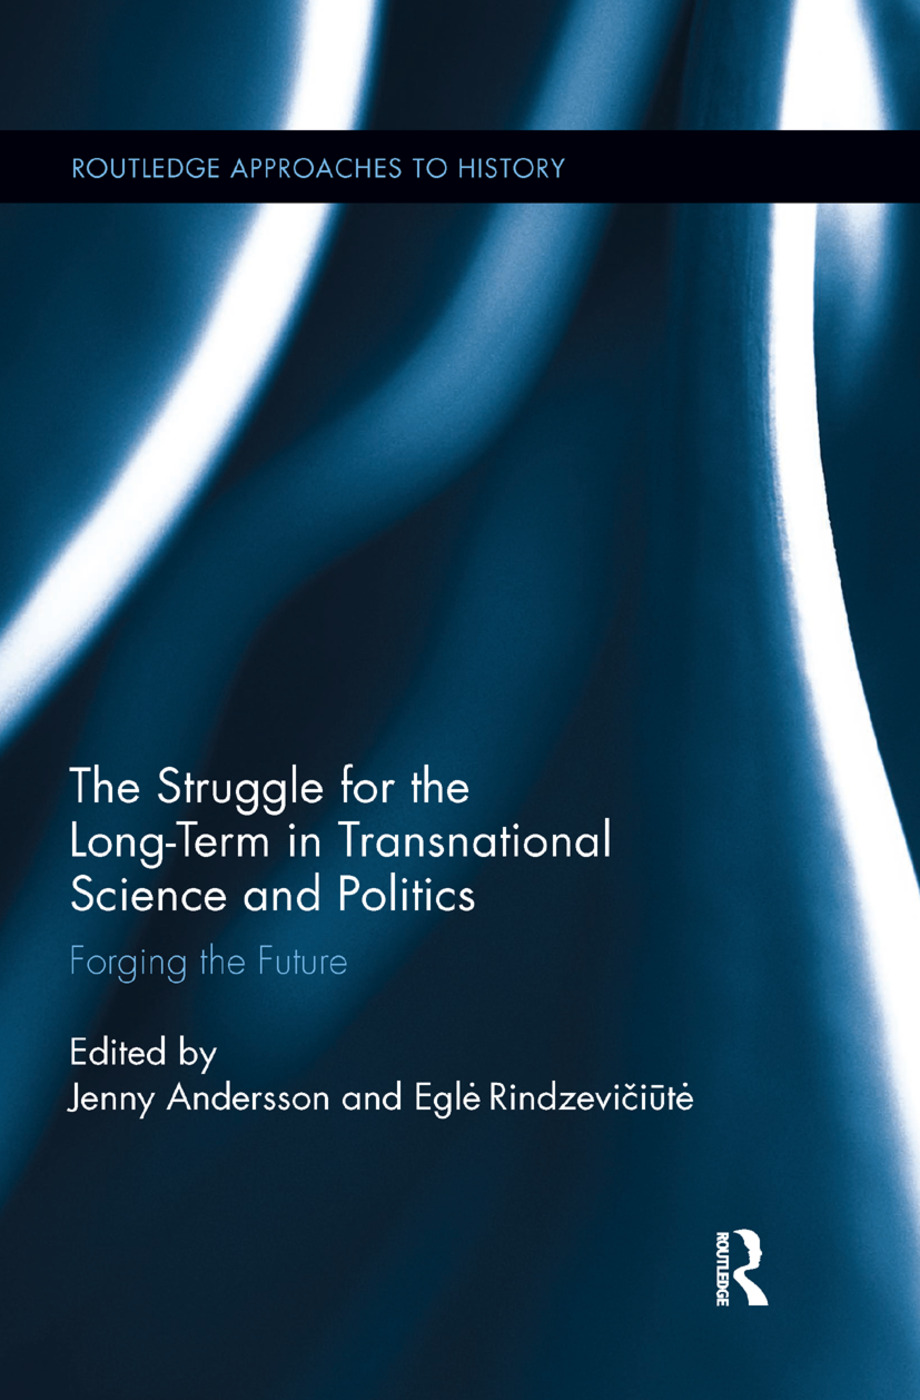 The Struggle for the Long-Term in Transnational Science and Politics